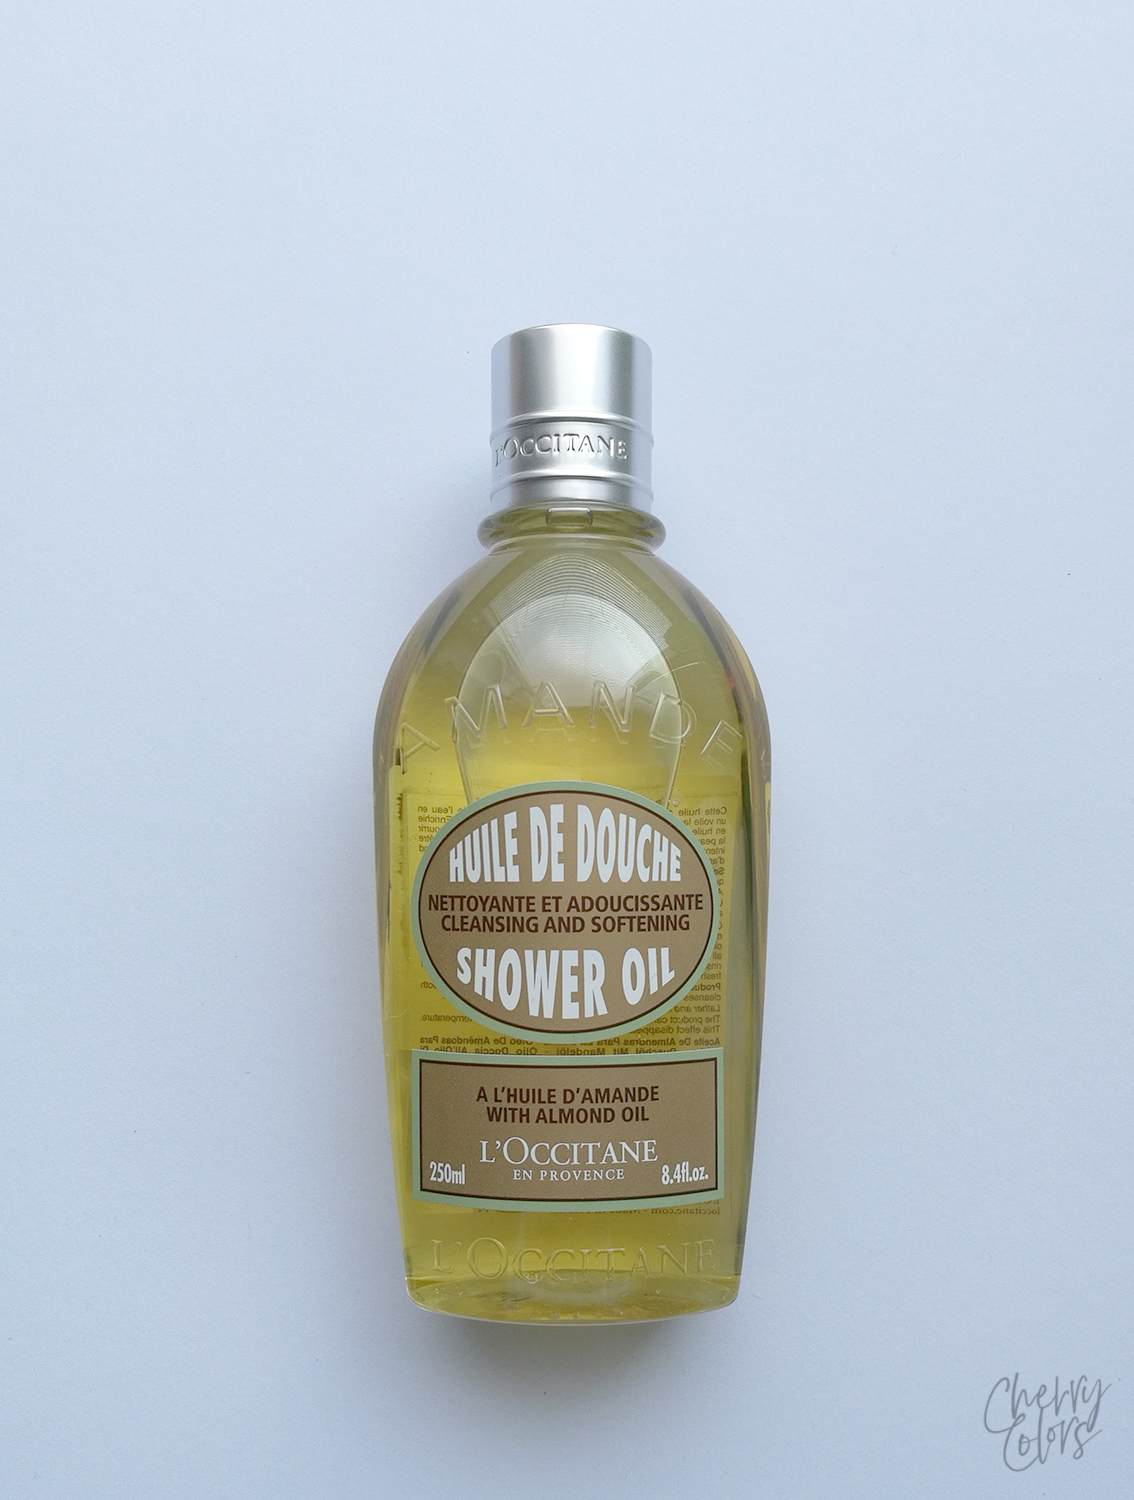 L'Occitane Shower Oil